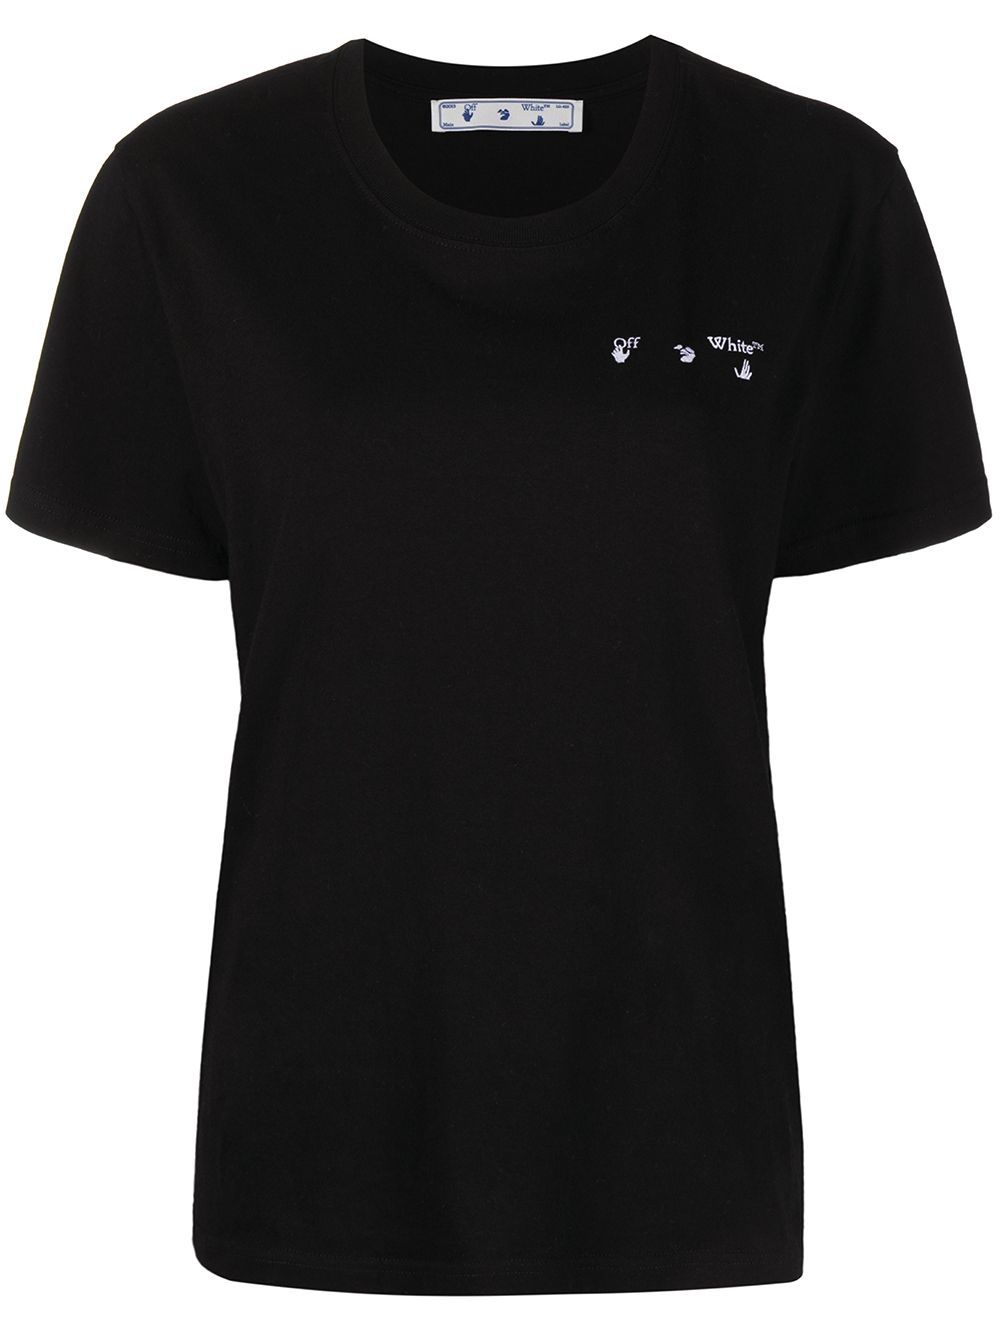 OFF-WHITE Women Arrow Liquid Melt T-Shirt Black